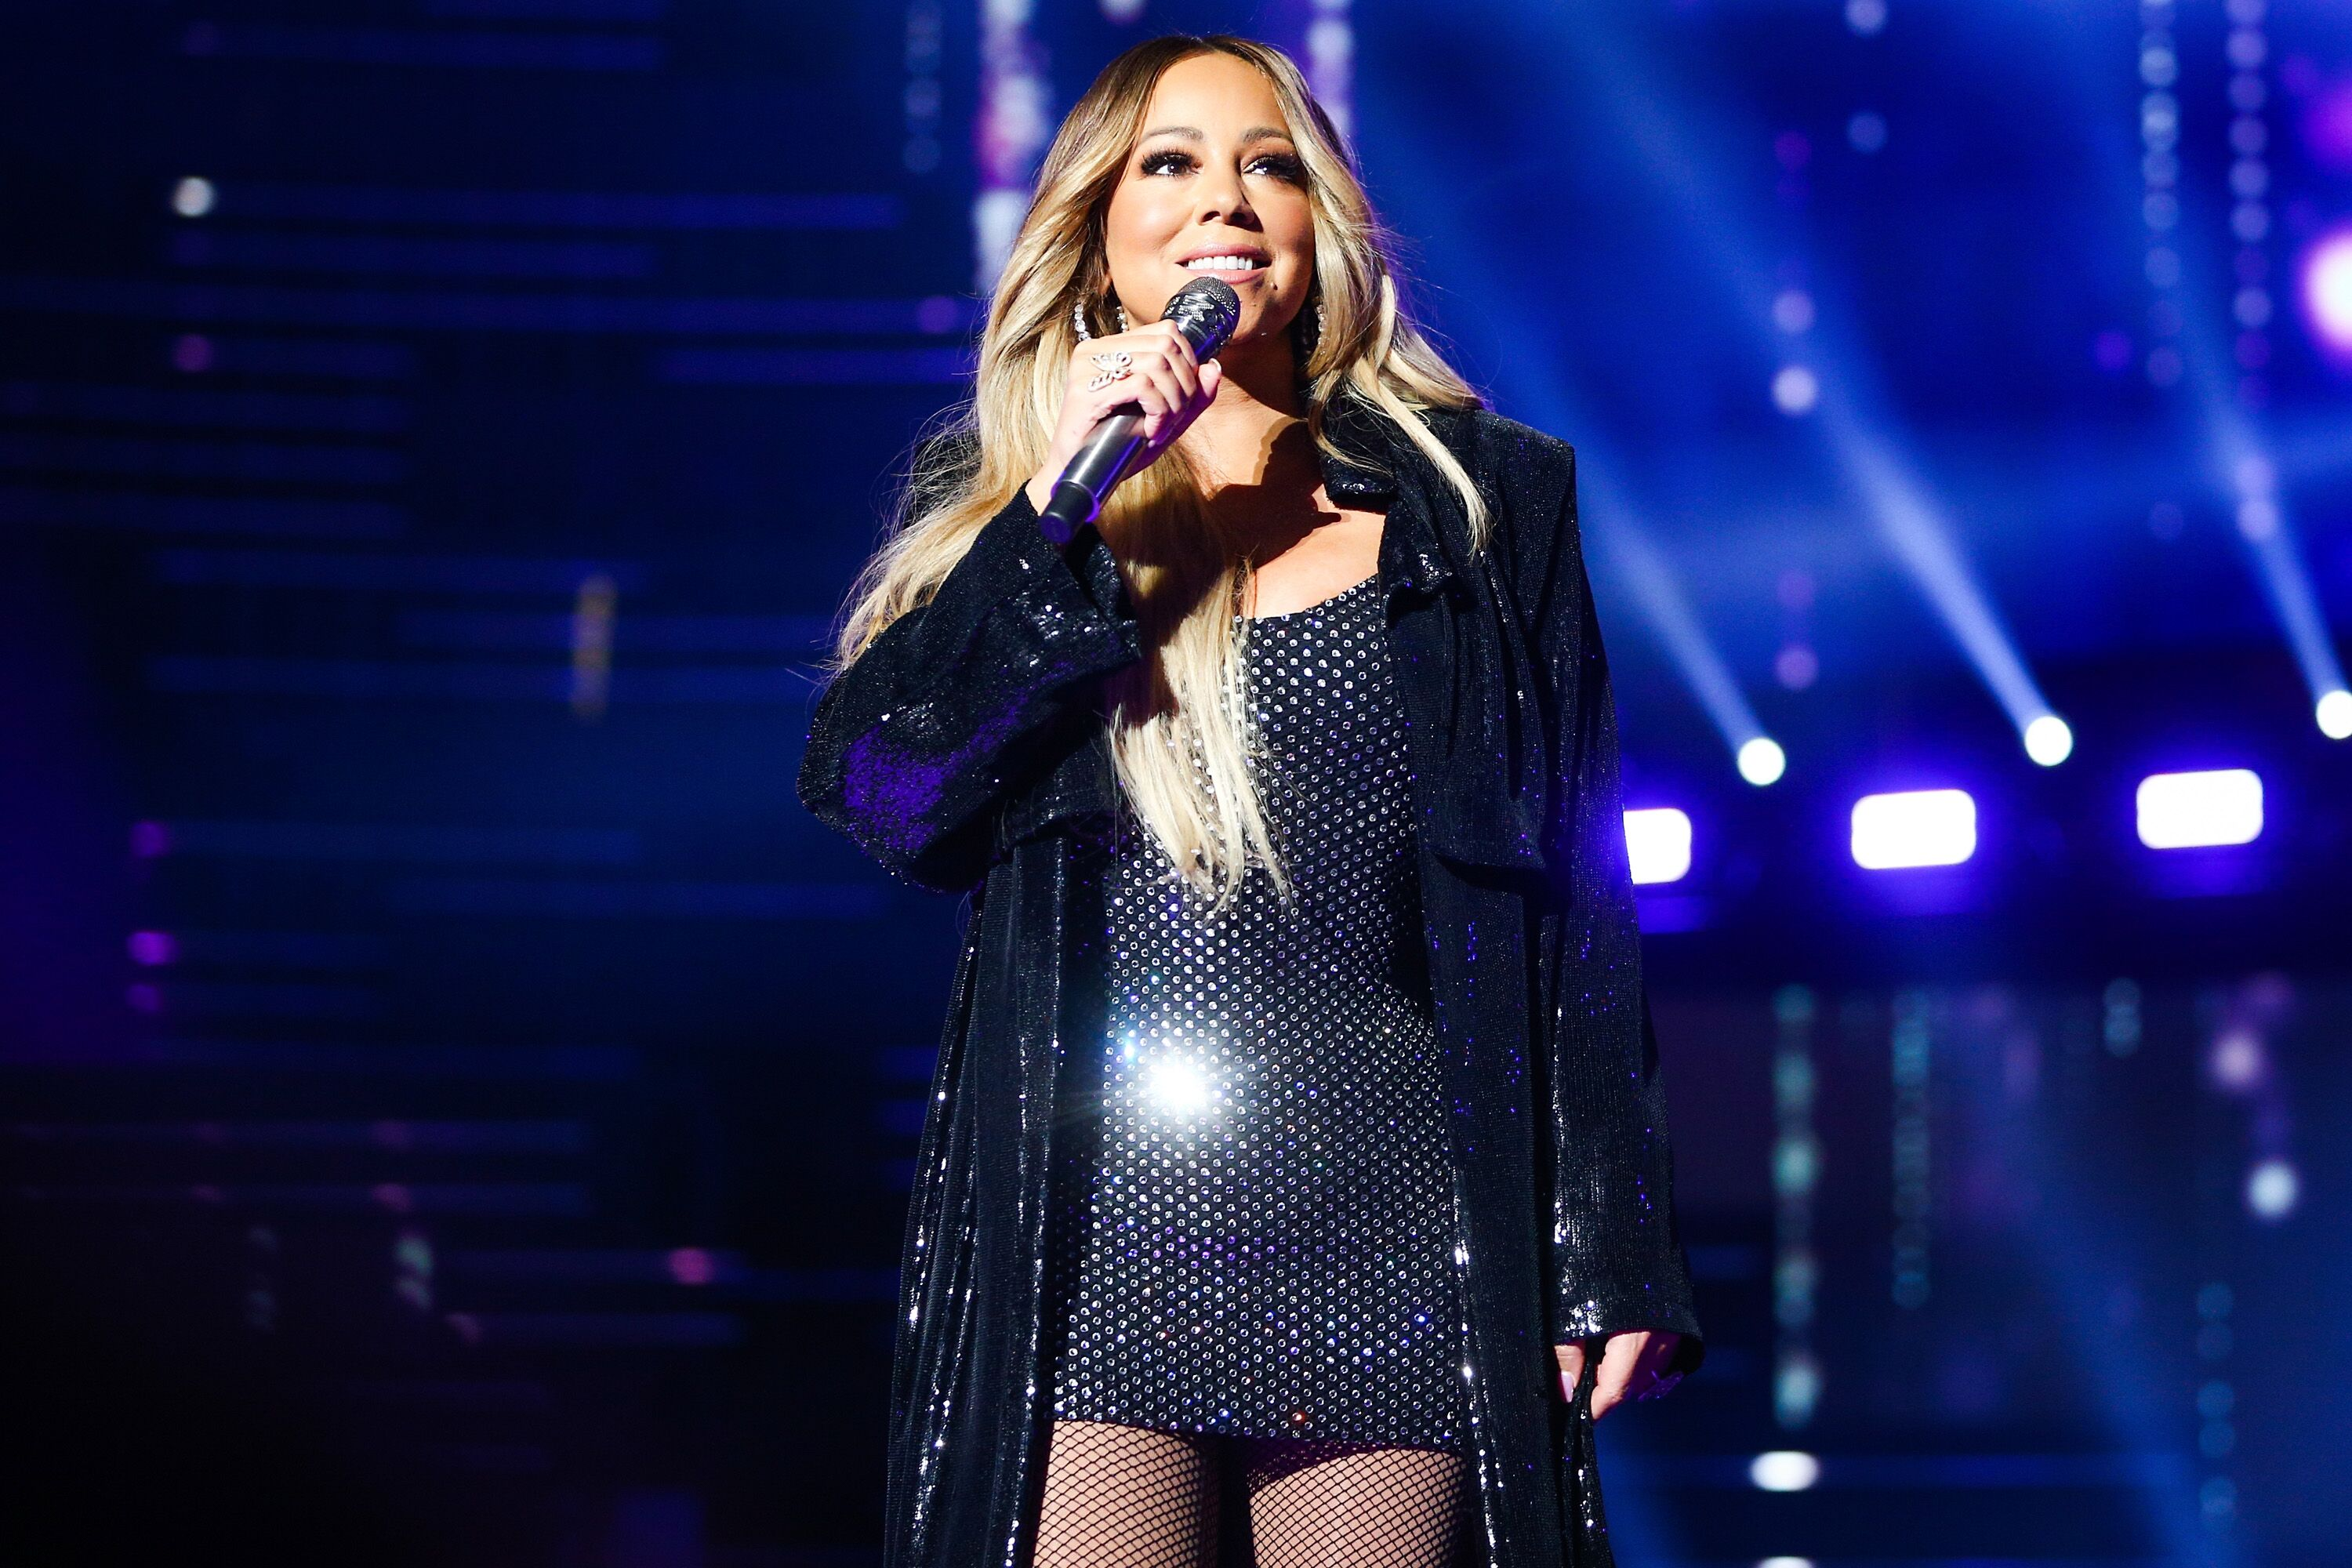 Mariah Carey performing on-stage | Source: Getty Images/GlobalImagesUkraine